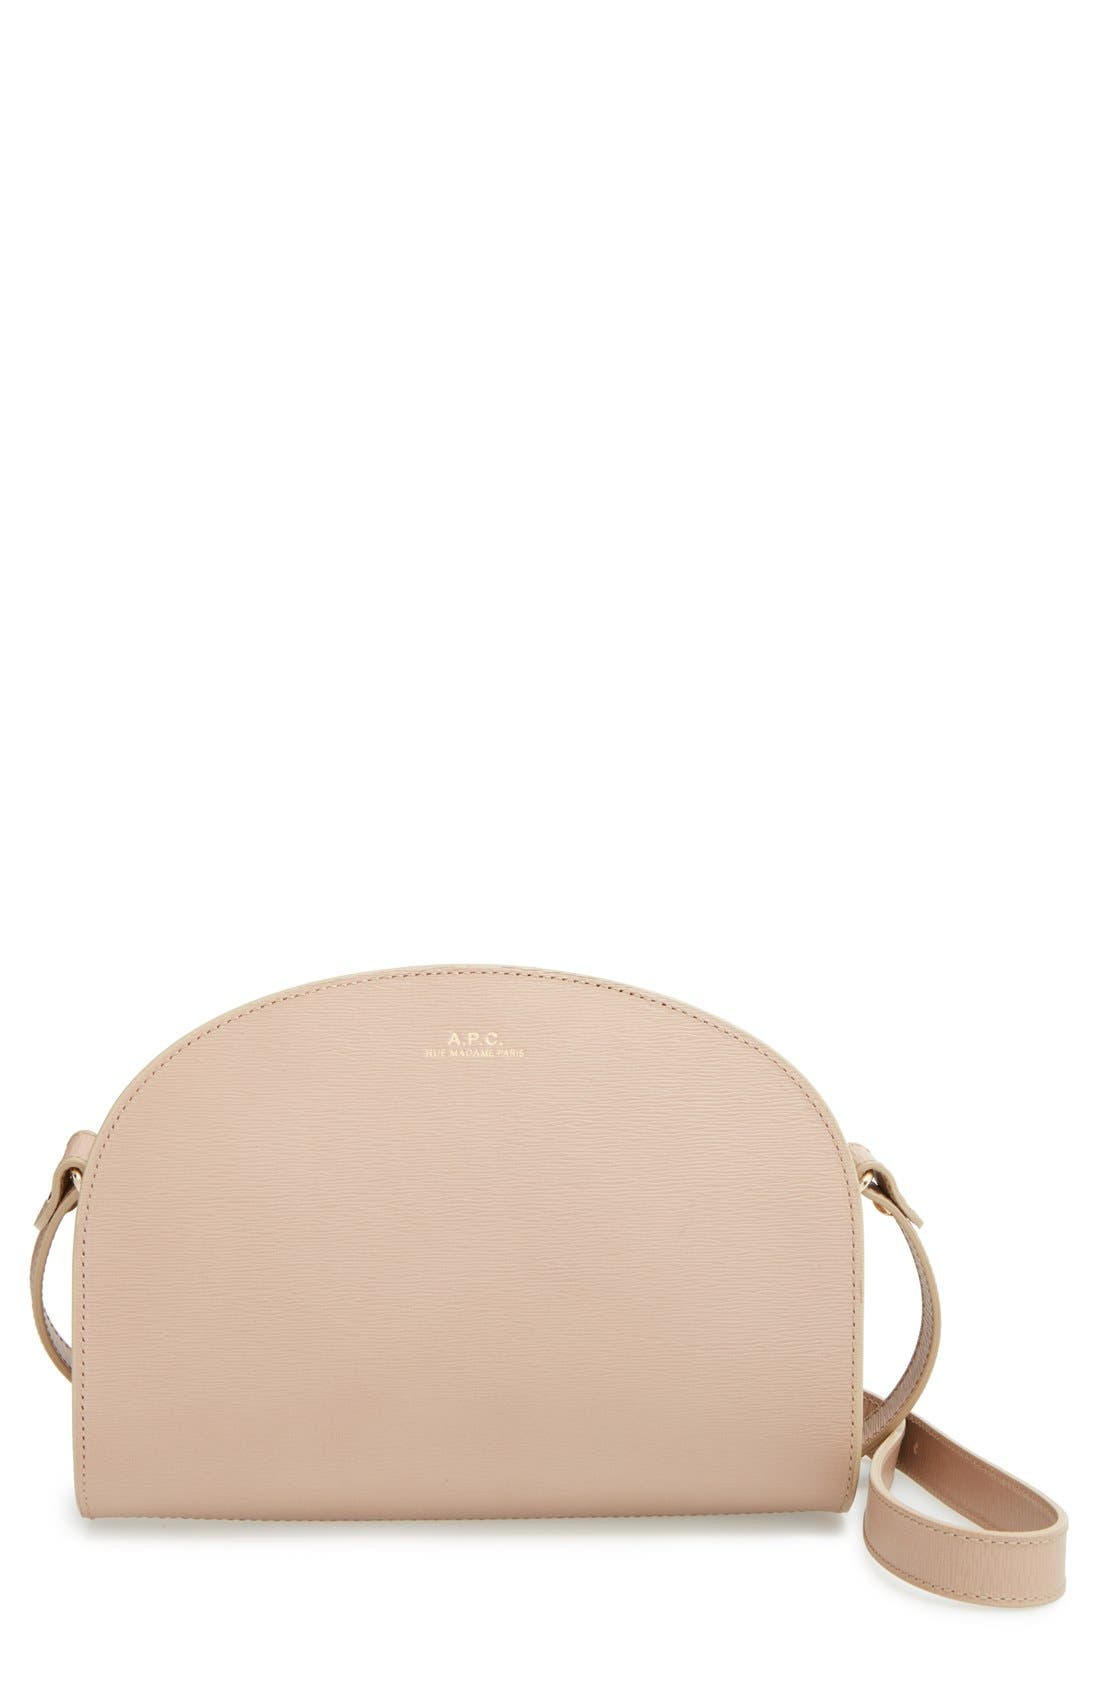 A.P.C. 'Demi Lune' Embossed Leather Crossbody Bag, Main, color, 250